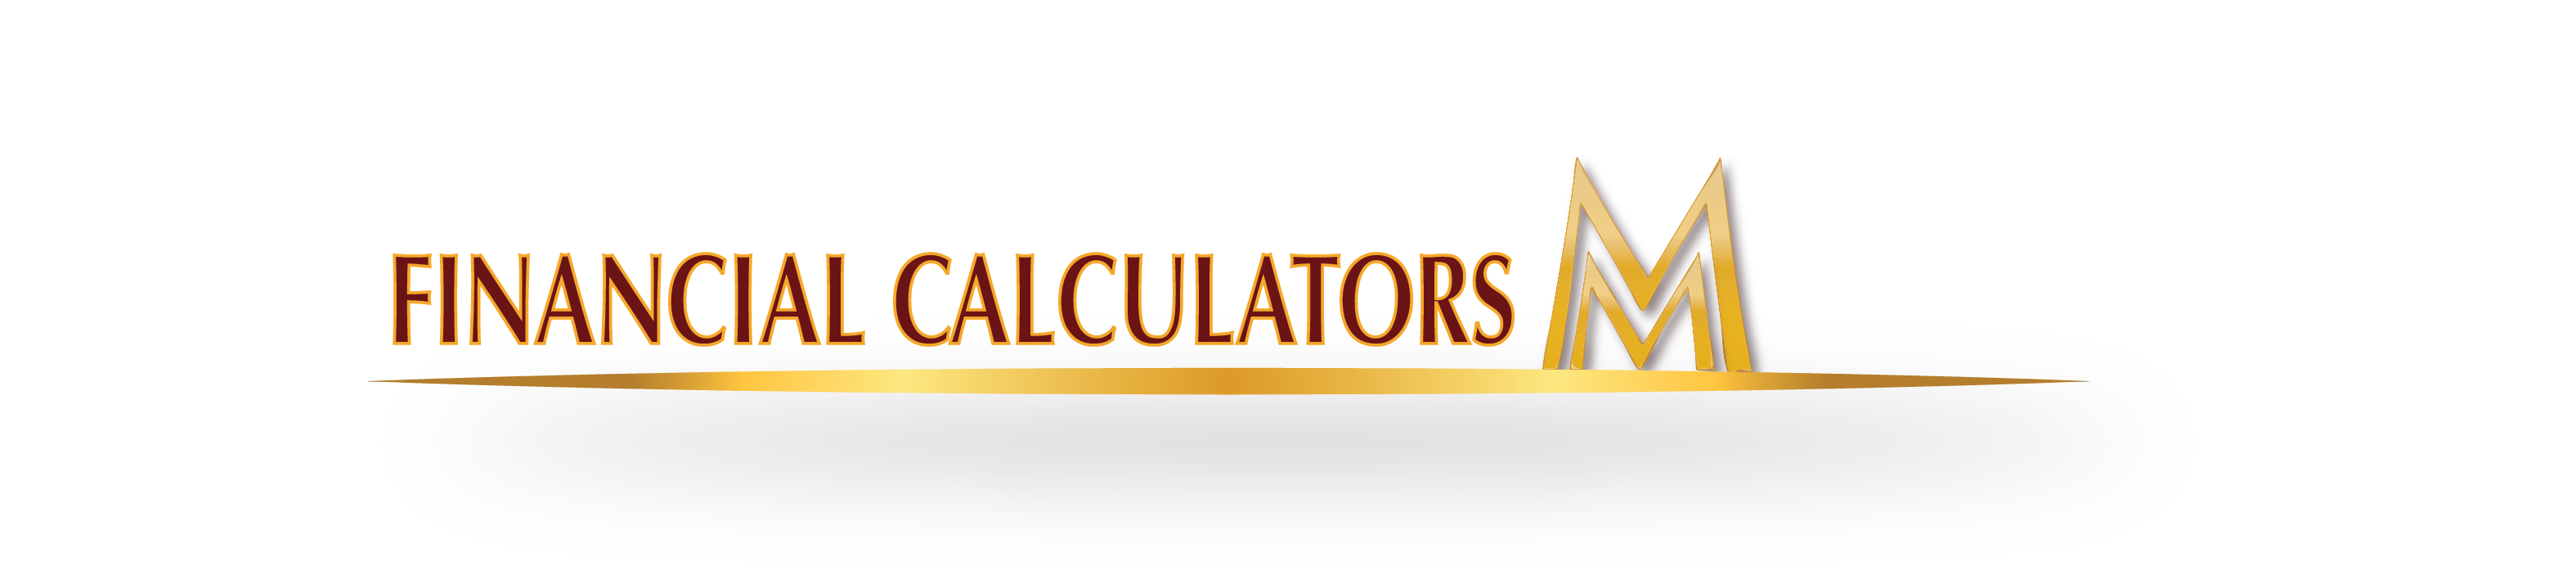 financial calculators image